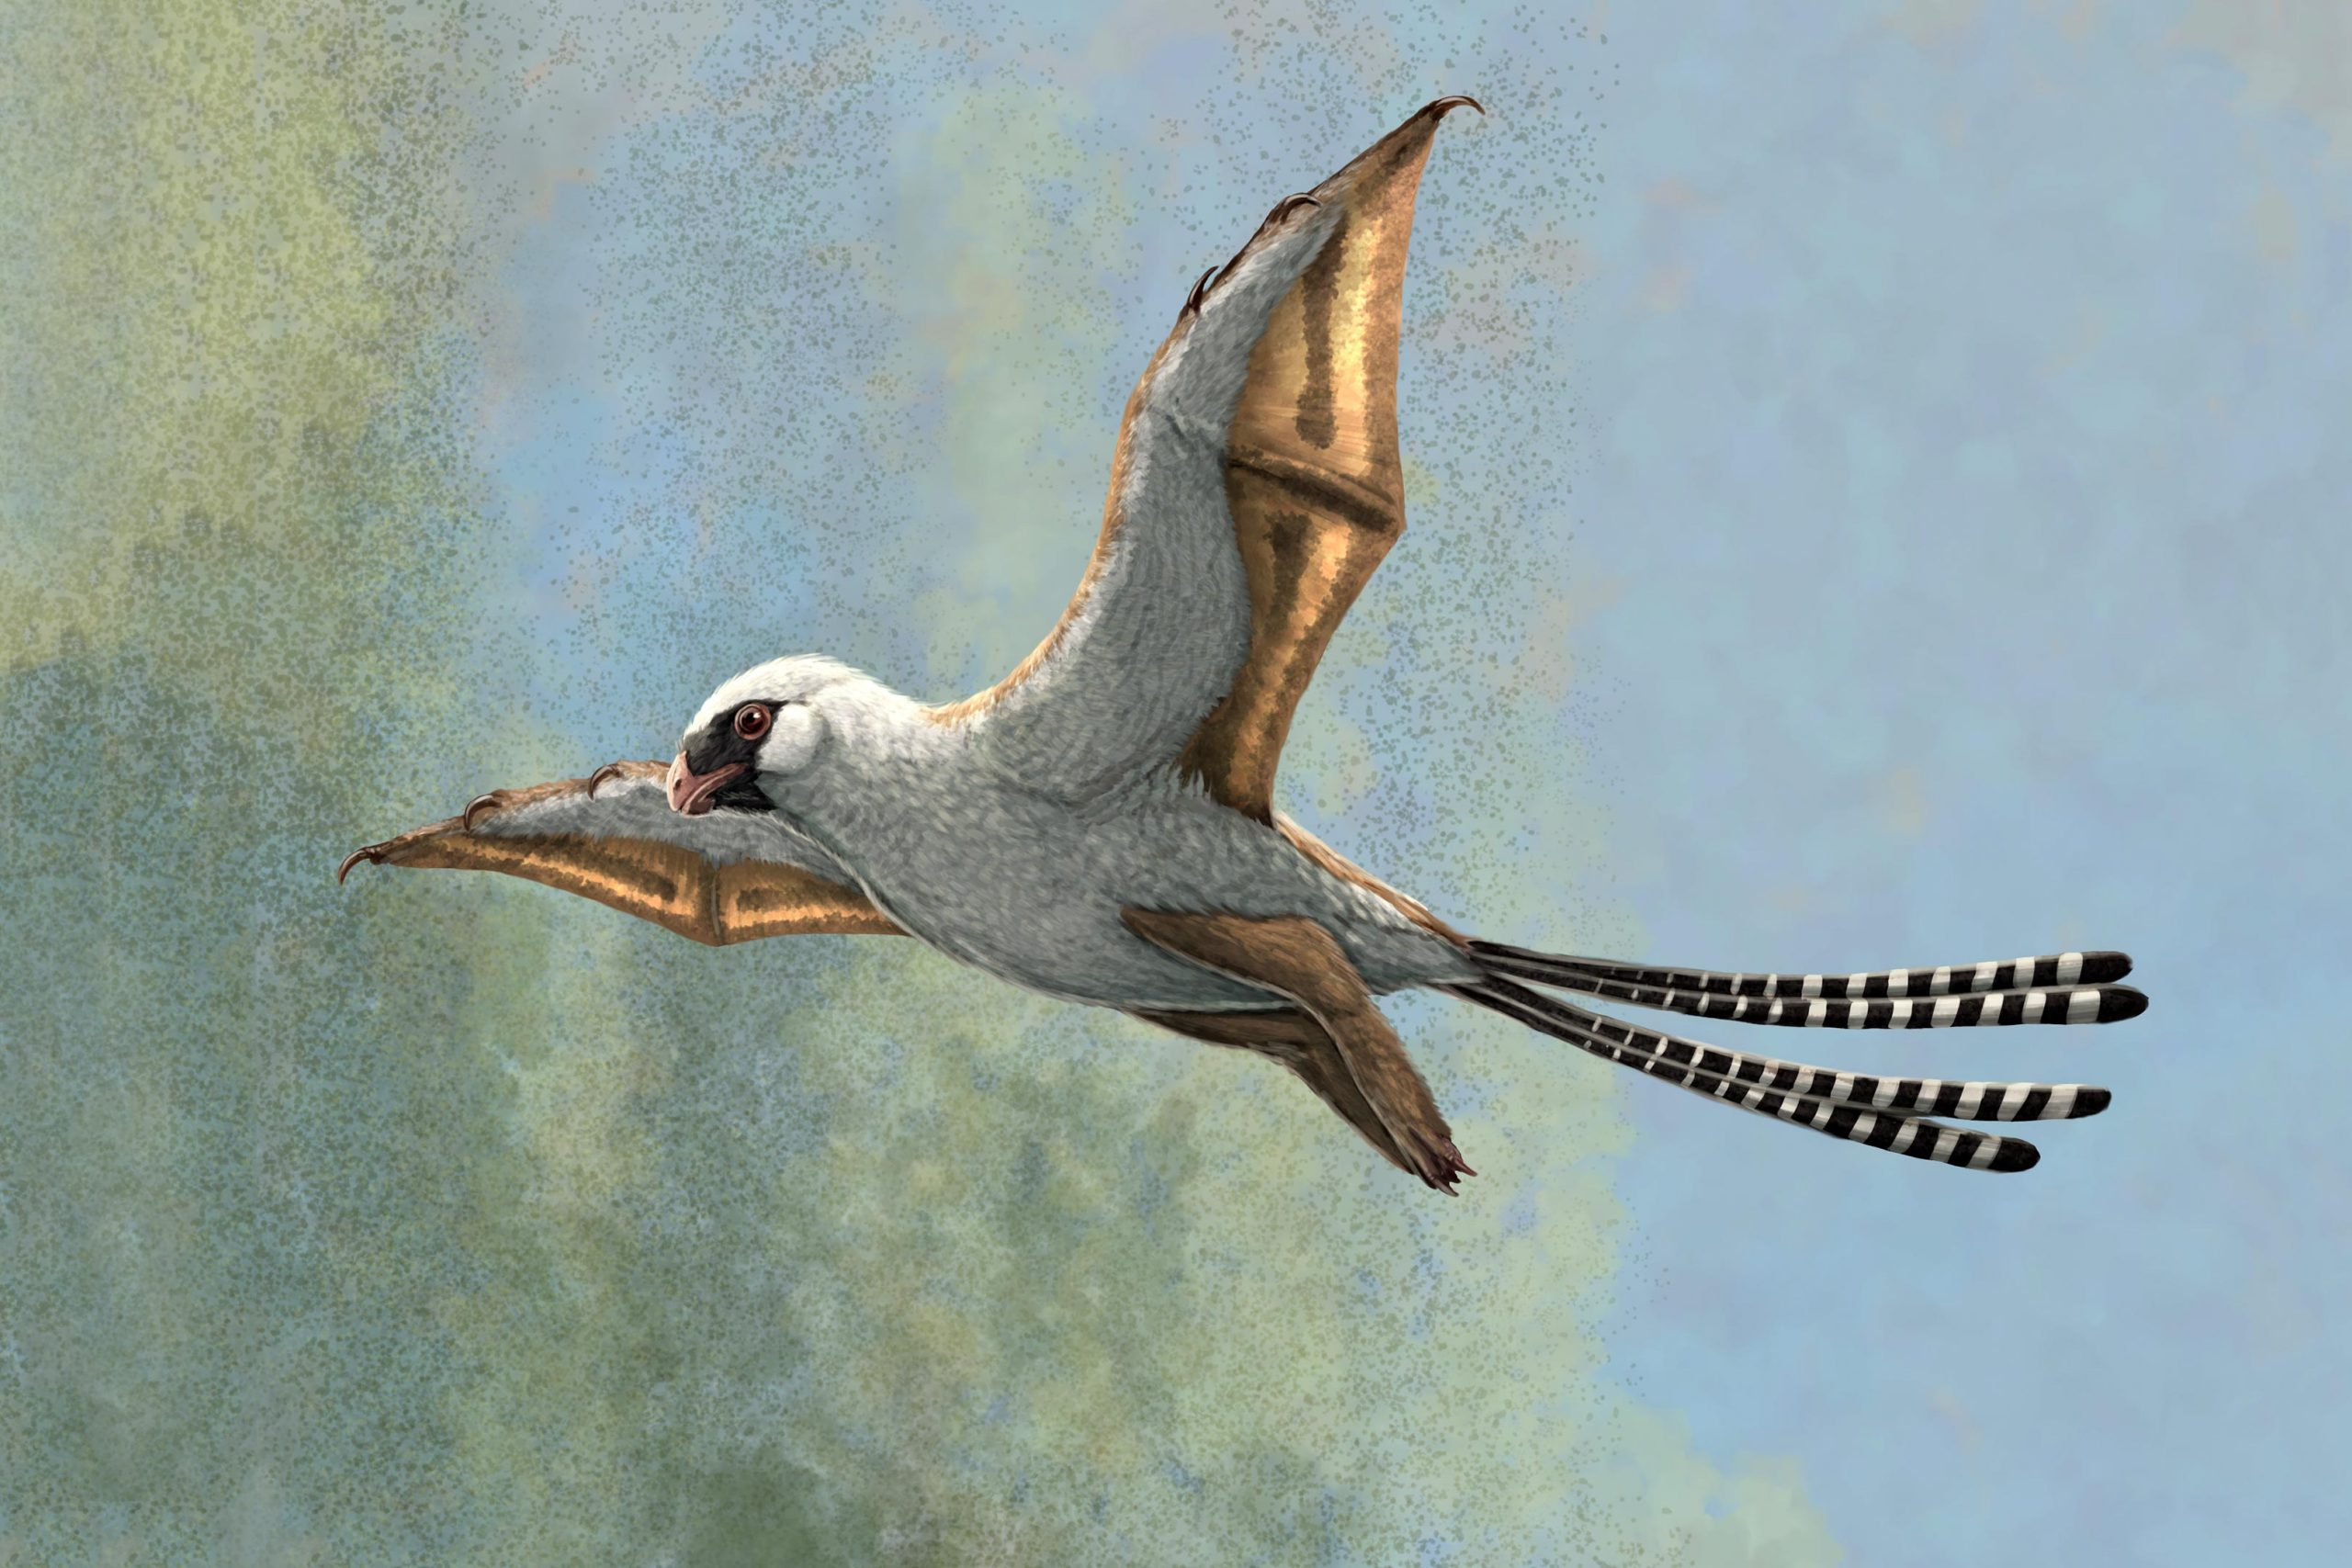 These Two Bird-Sized Dinosaurs Evolved Bat-Like Wings, but Struggled to Fly - SciTechDaily